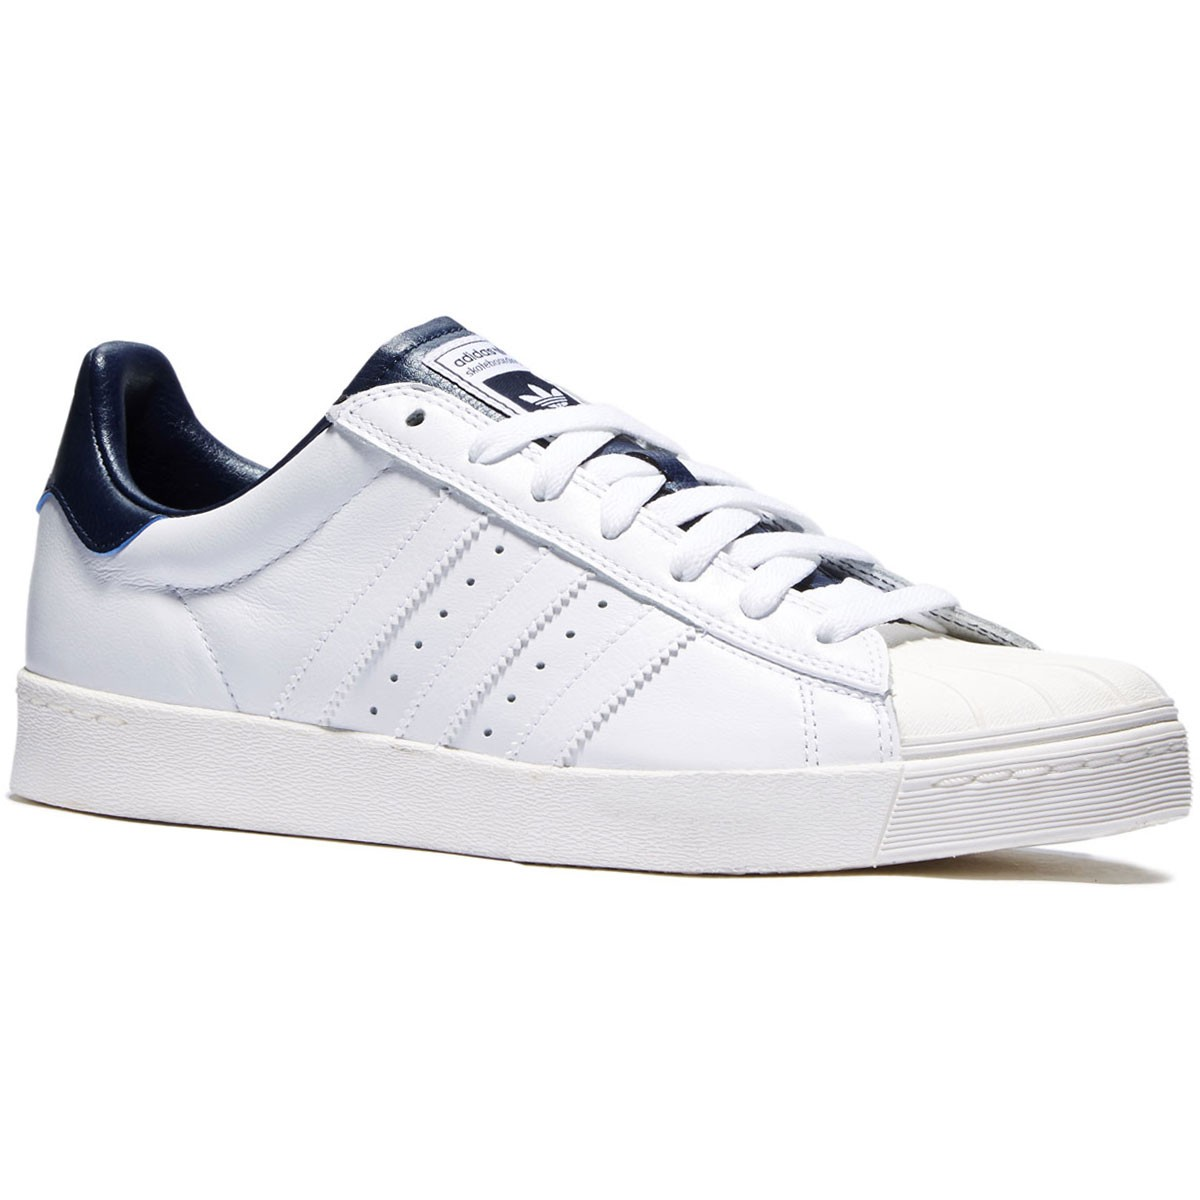 Cheap Adidas superstar adv skate US Independent Retailers Confederation